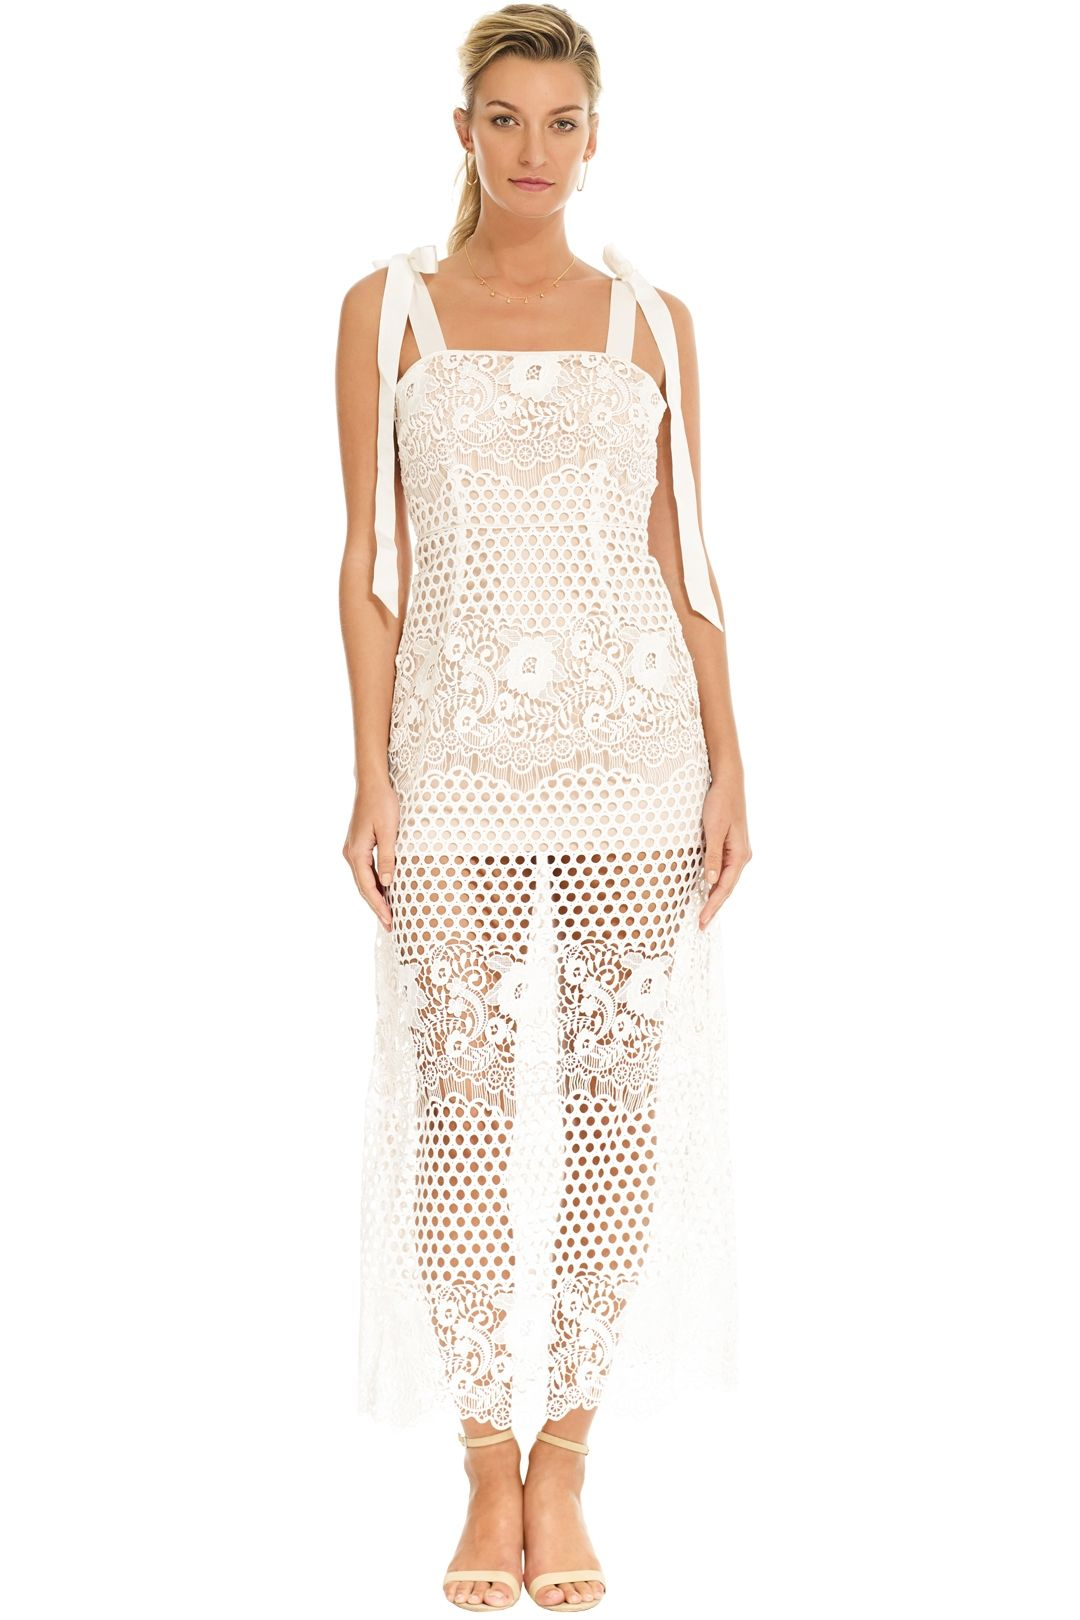 Alice McCall - Secret Lover Dress - White - Front